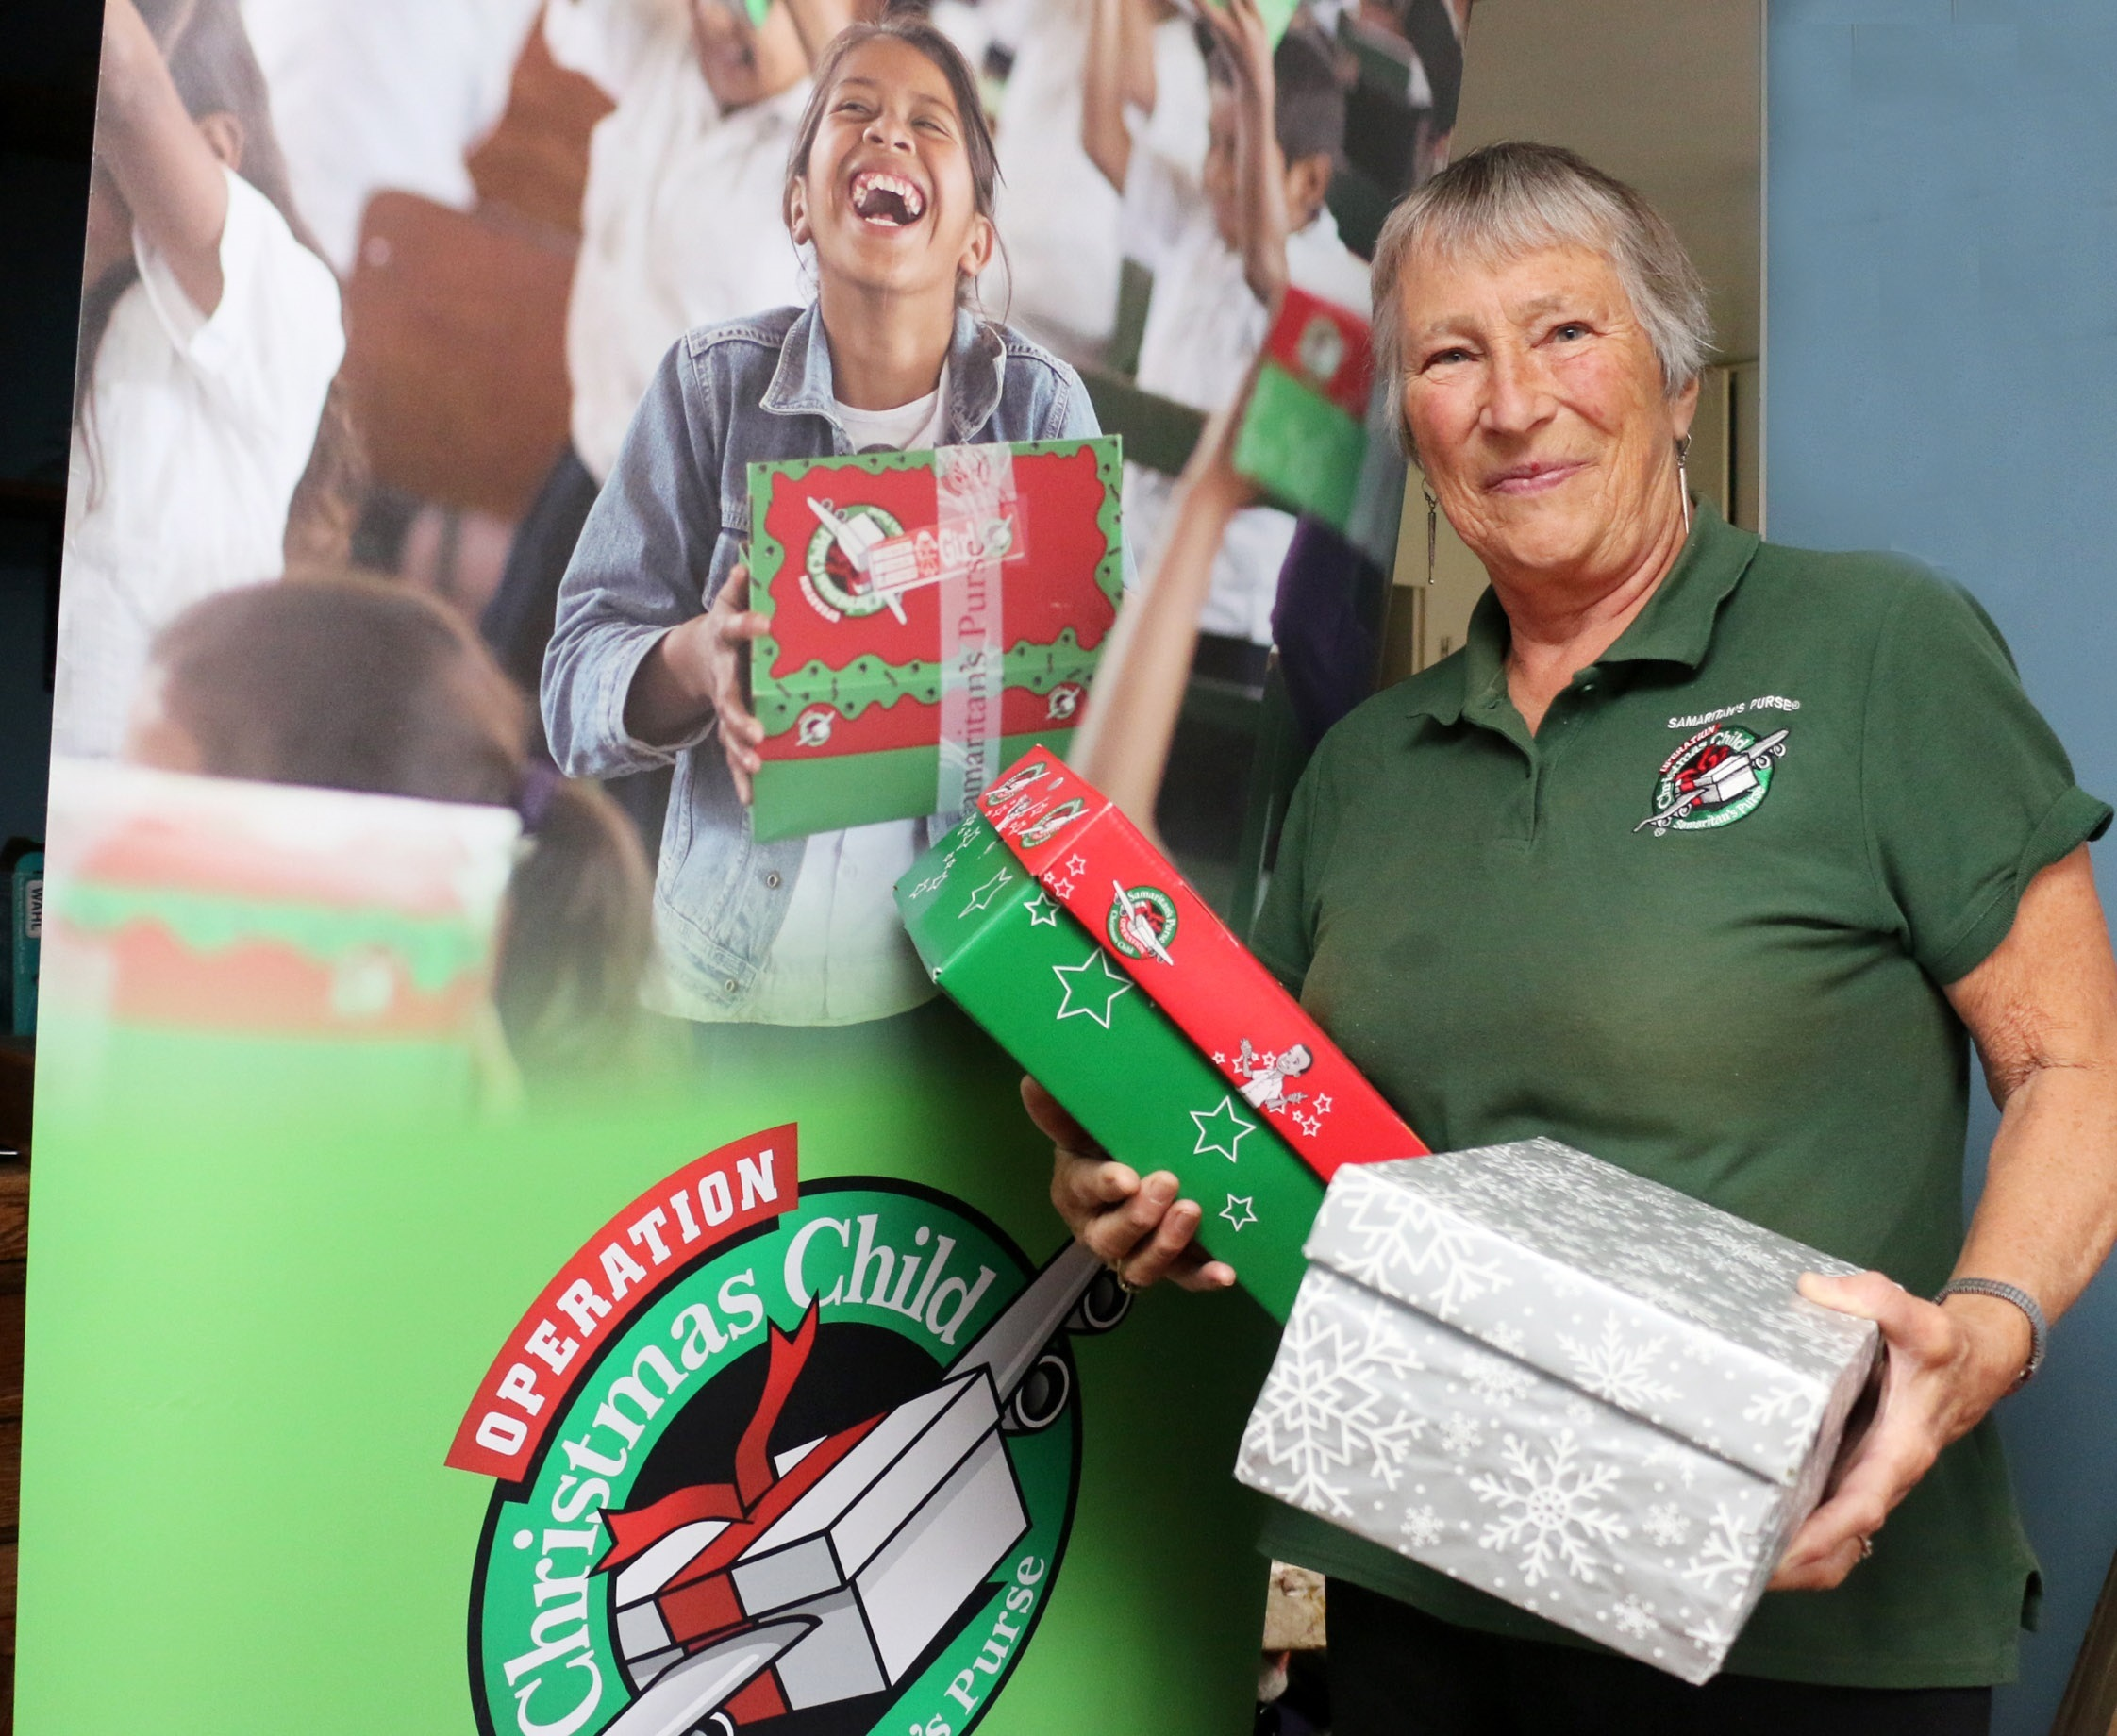 Rosemary Aveyard with shoeboxes for the Operation Christmas Child appeal